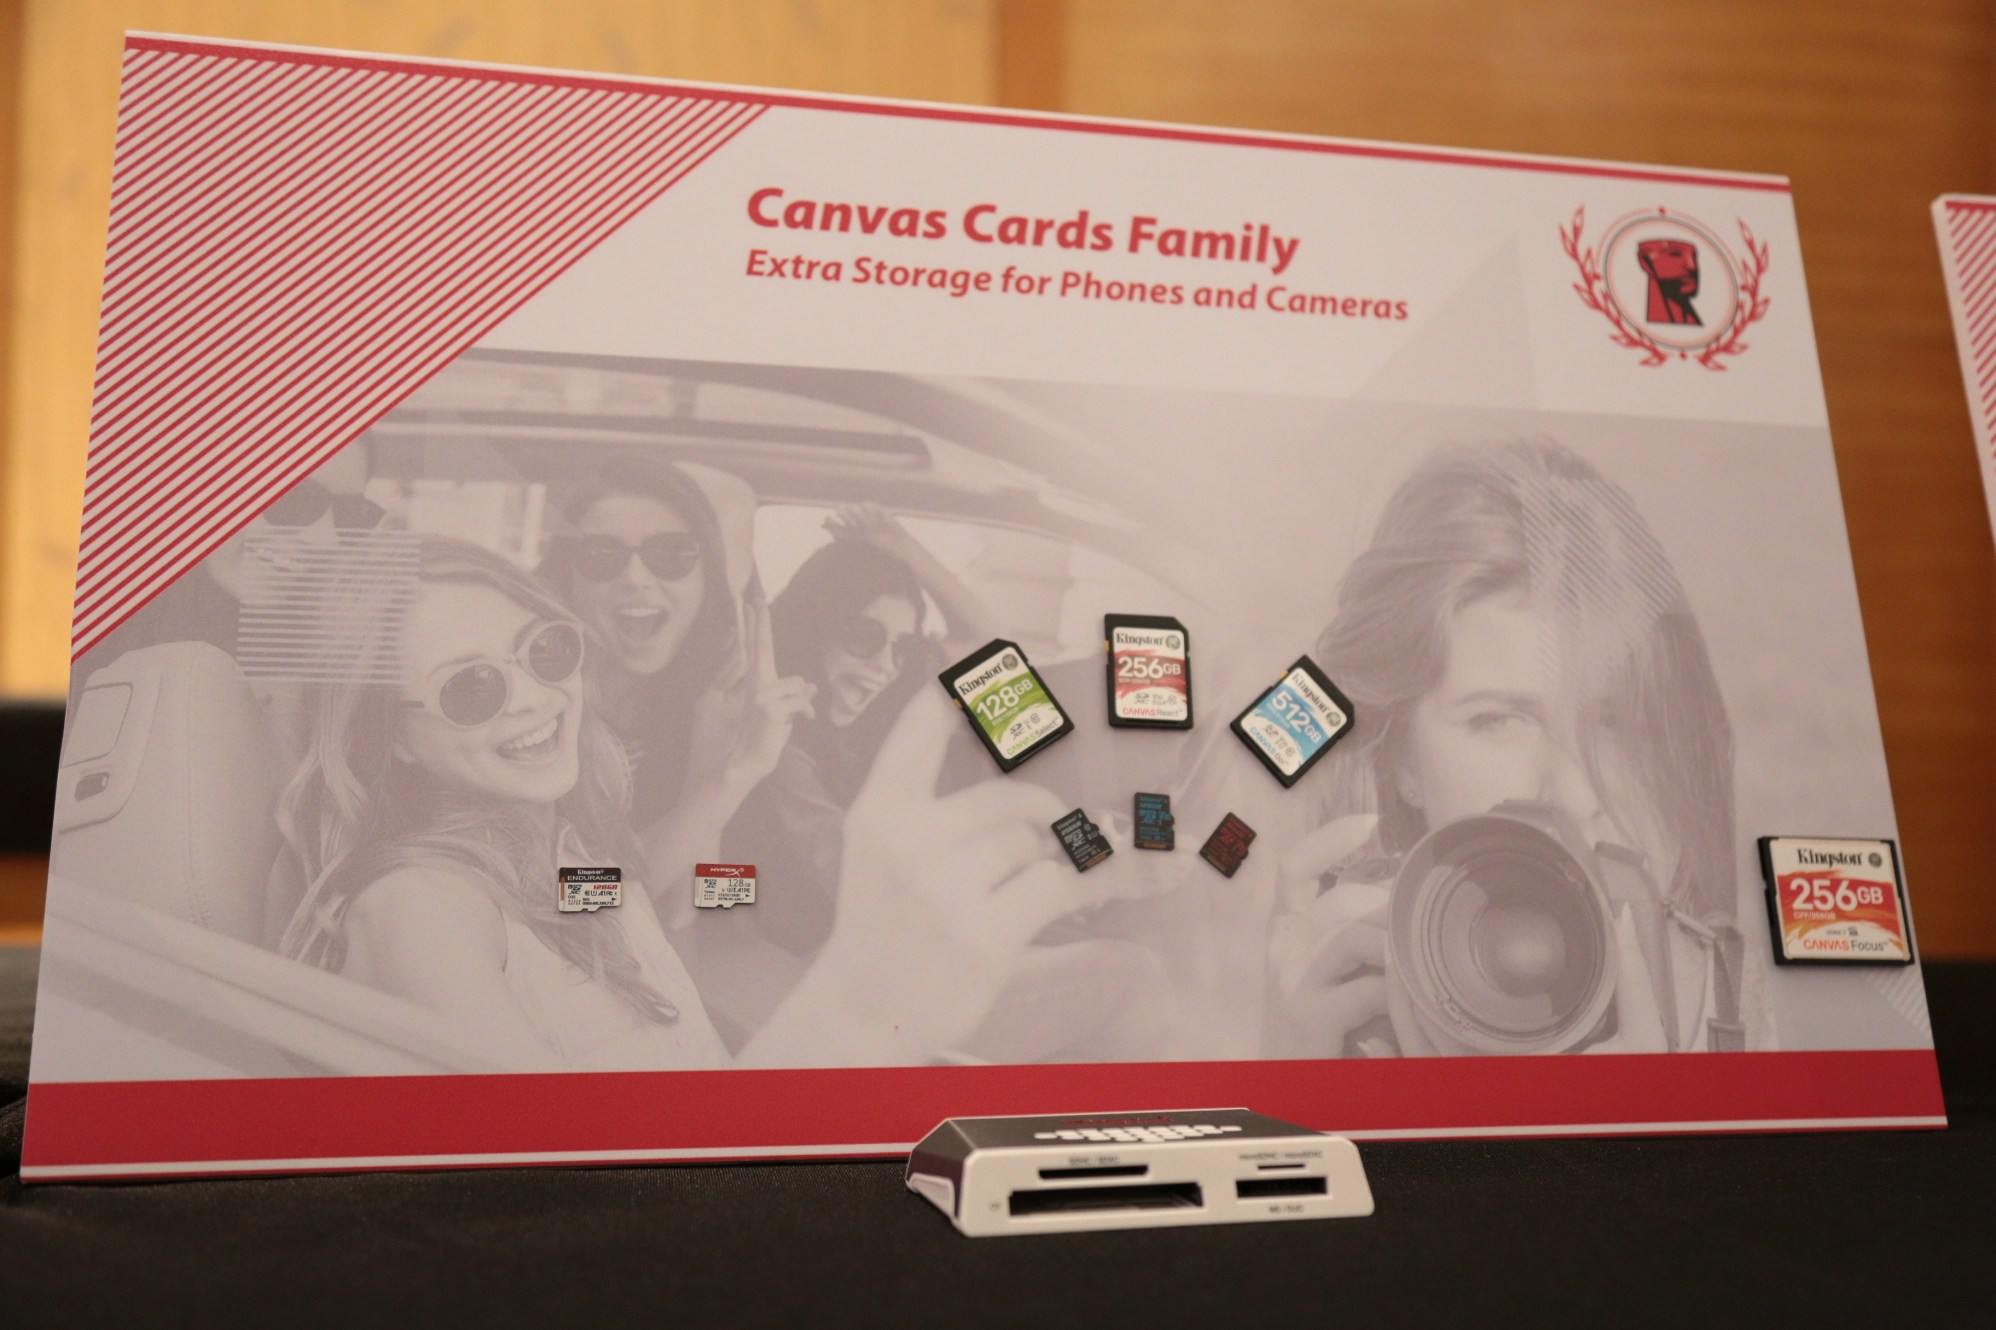 Canvas CArd Family Image